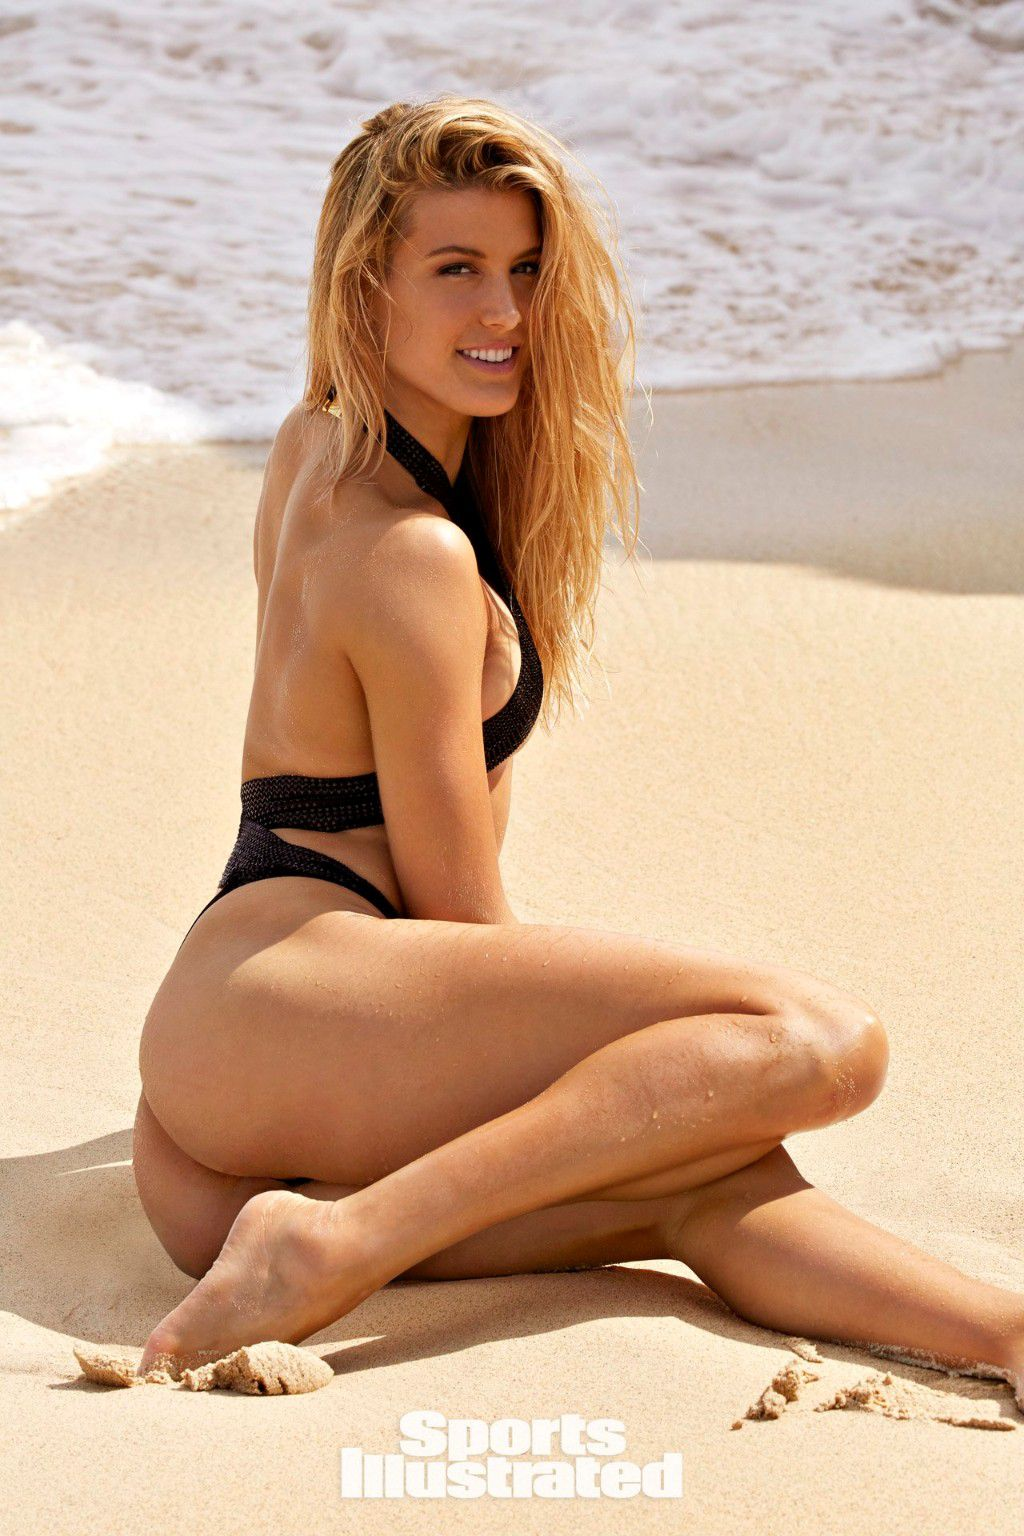 eugenie-bouchard-super-sexy-in-sports-illustrated-swimsuit-issue-2018-2